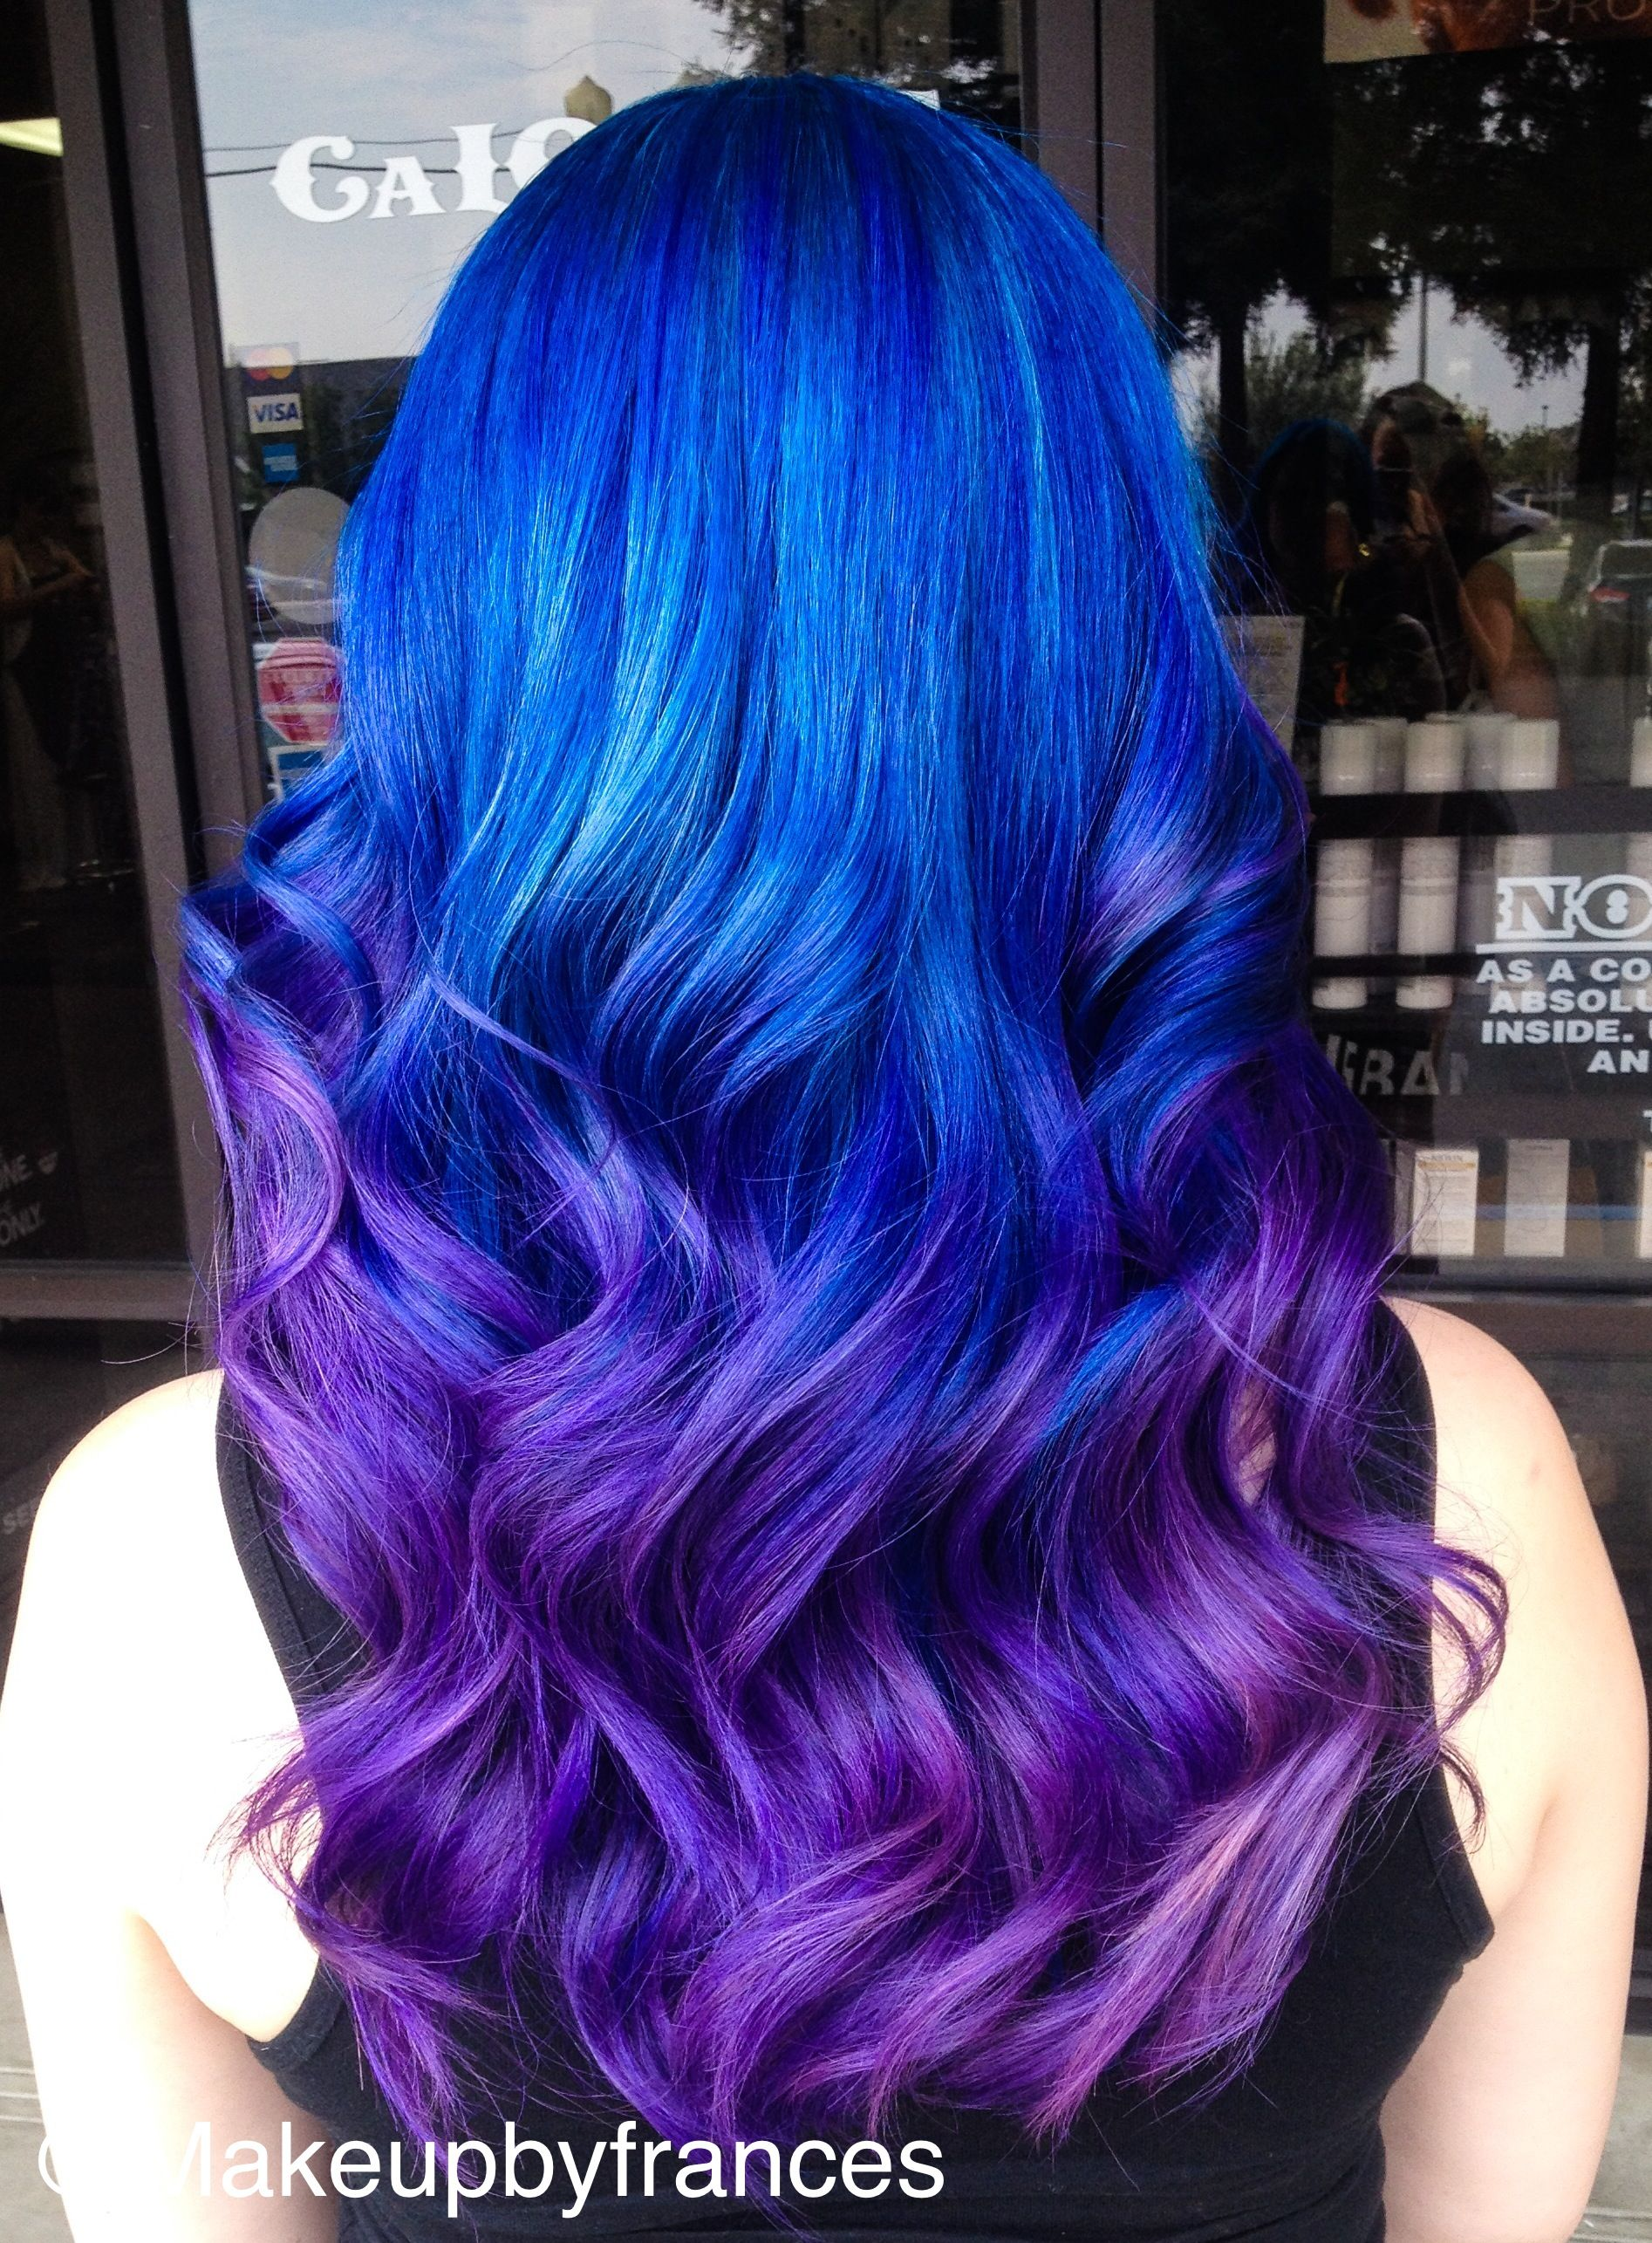 Makeupbyfrances hair pinterest hair coloring hair style and